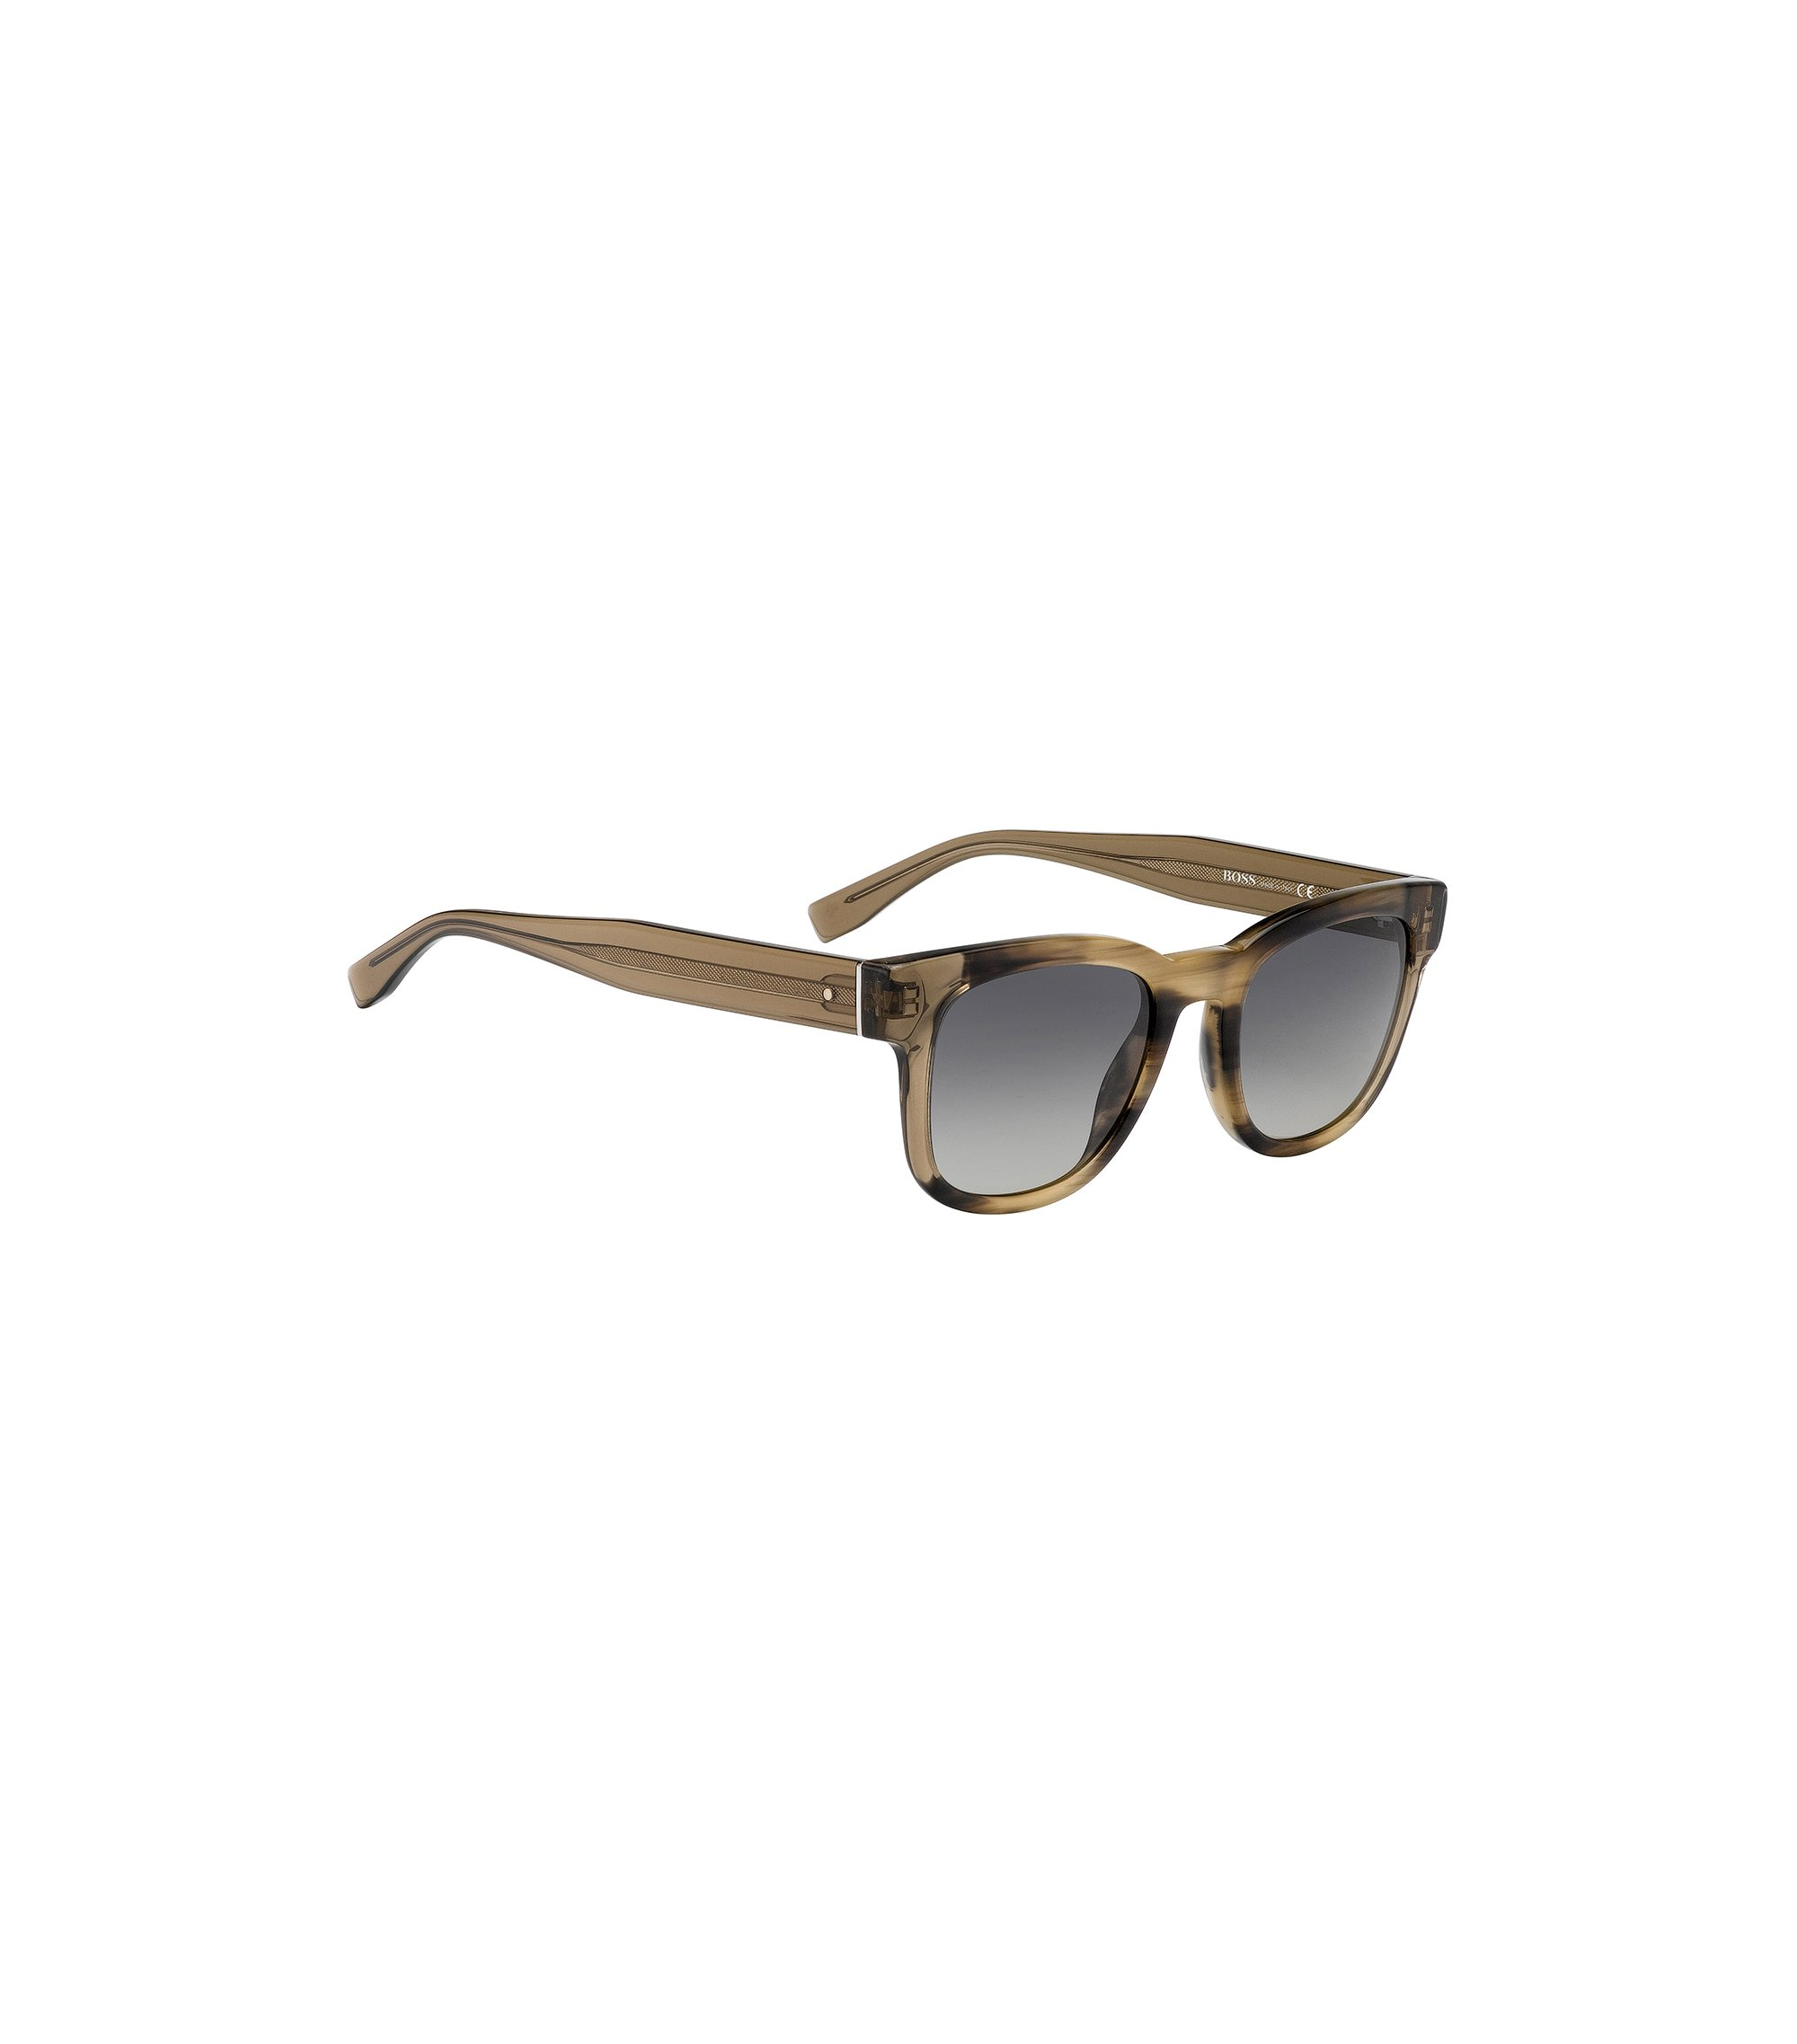 Sunglasses: 'BOSS 0736/S', Assorted-Pre-Pack